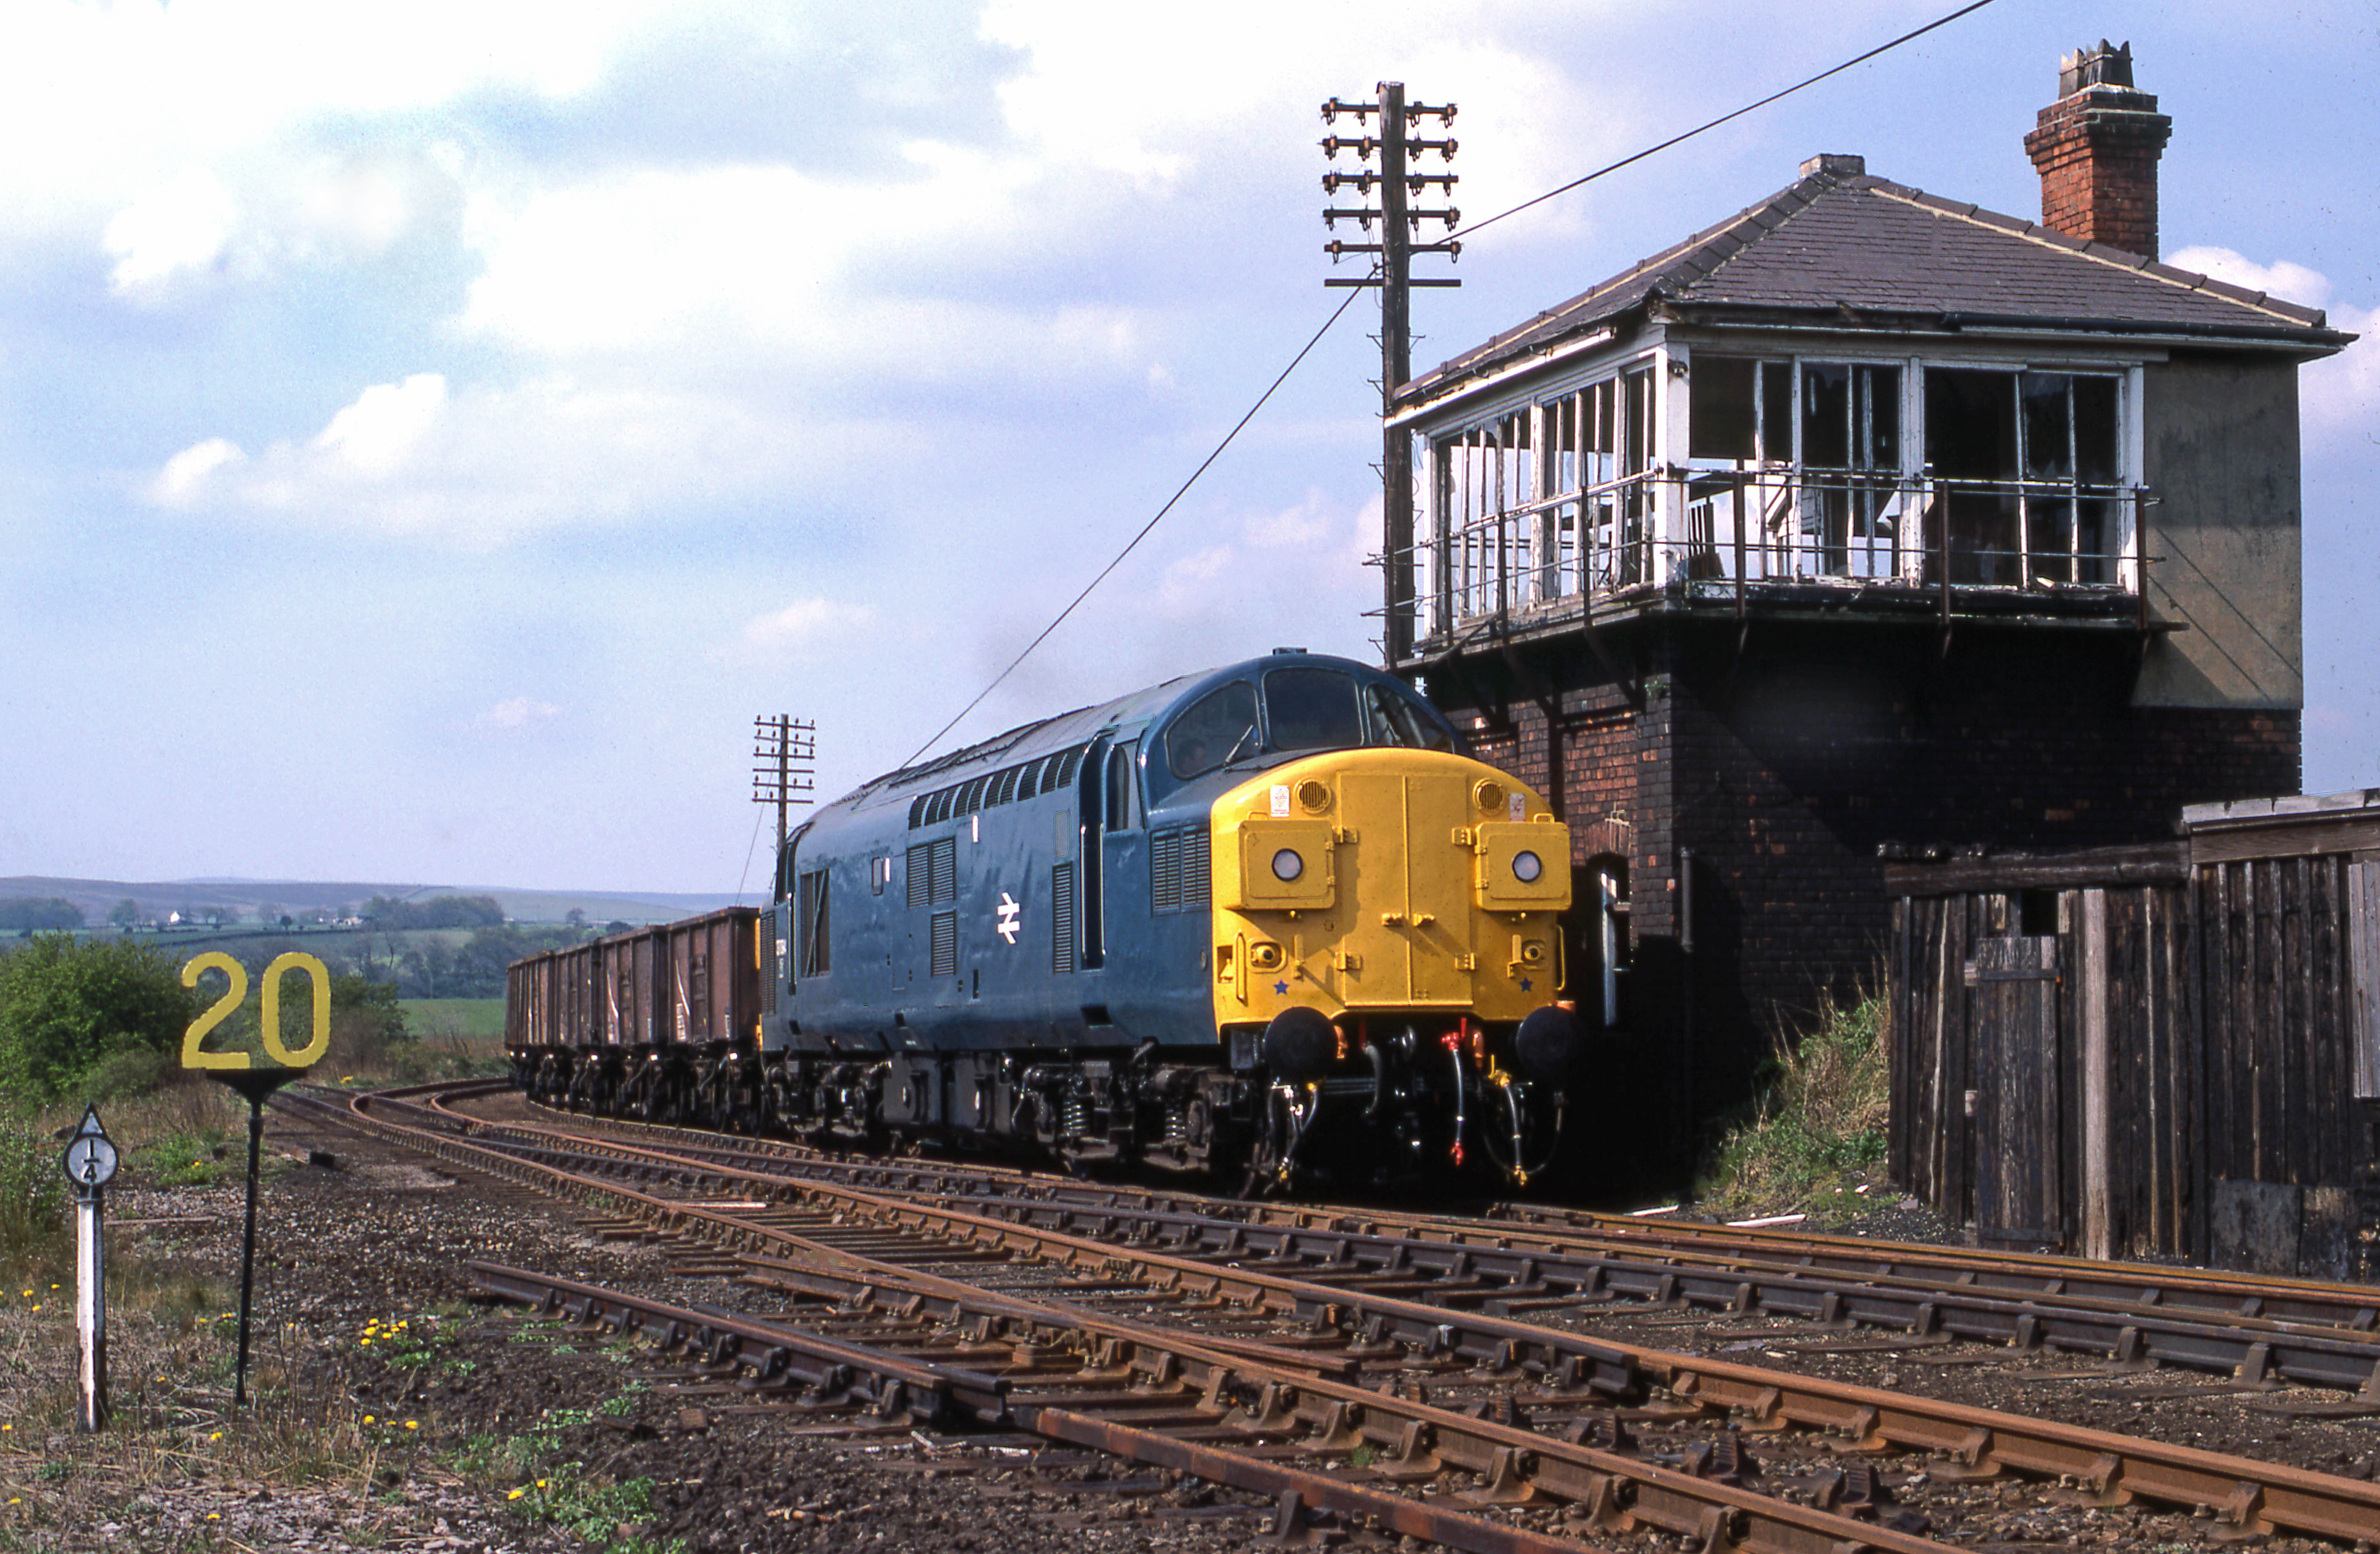 37094 at Consett East (10 May 1982) Stephen McGahon